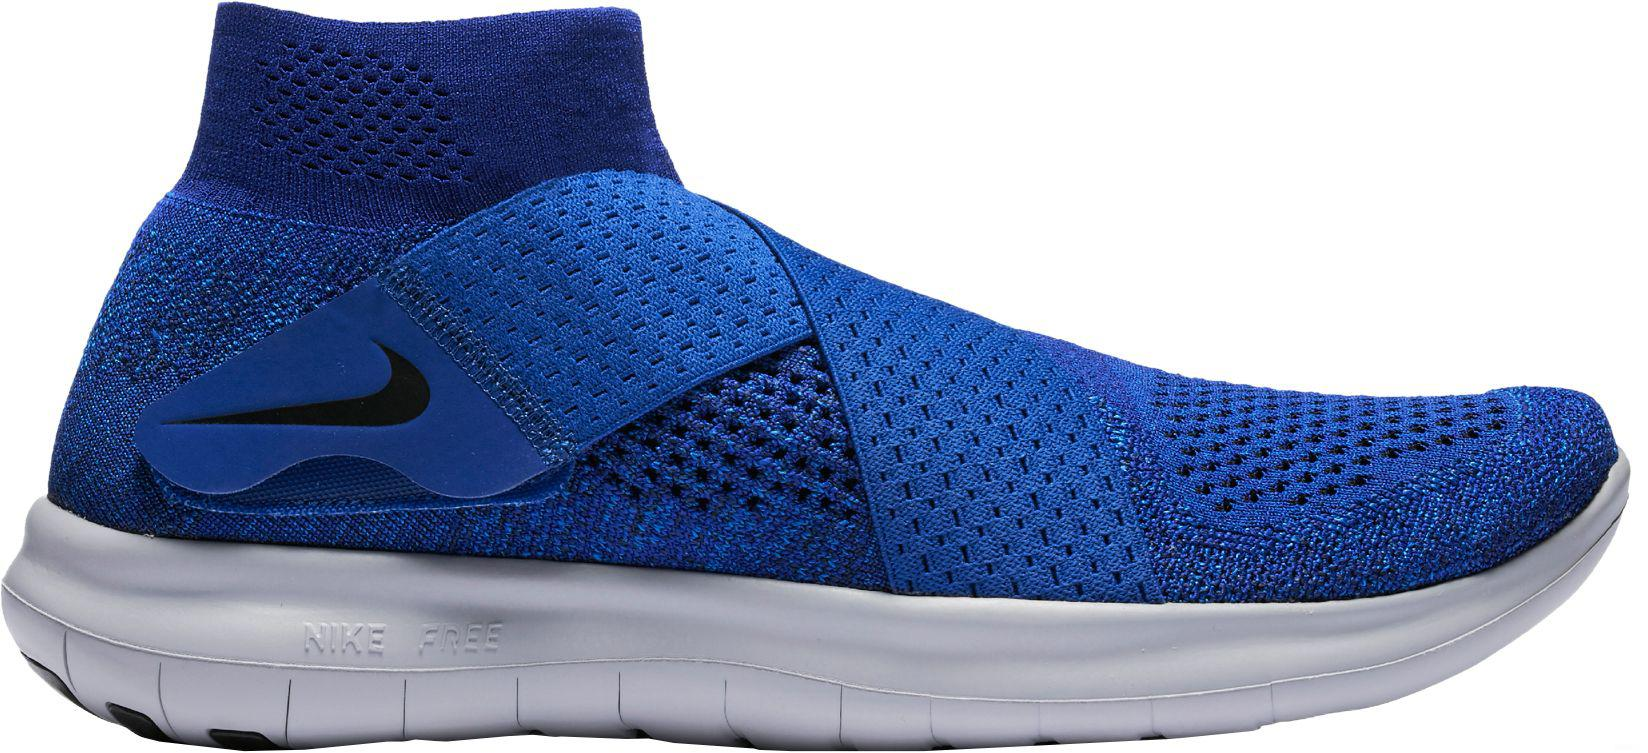 ffee5e12ba89 Lyst - Nike Free Rn Motion Flyknit 2 Running Shoes in Blue for Men